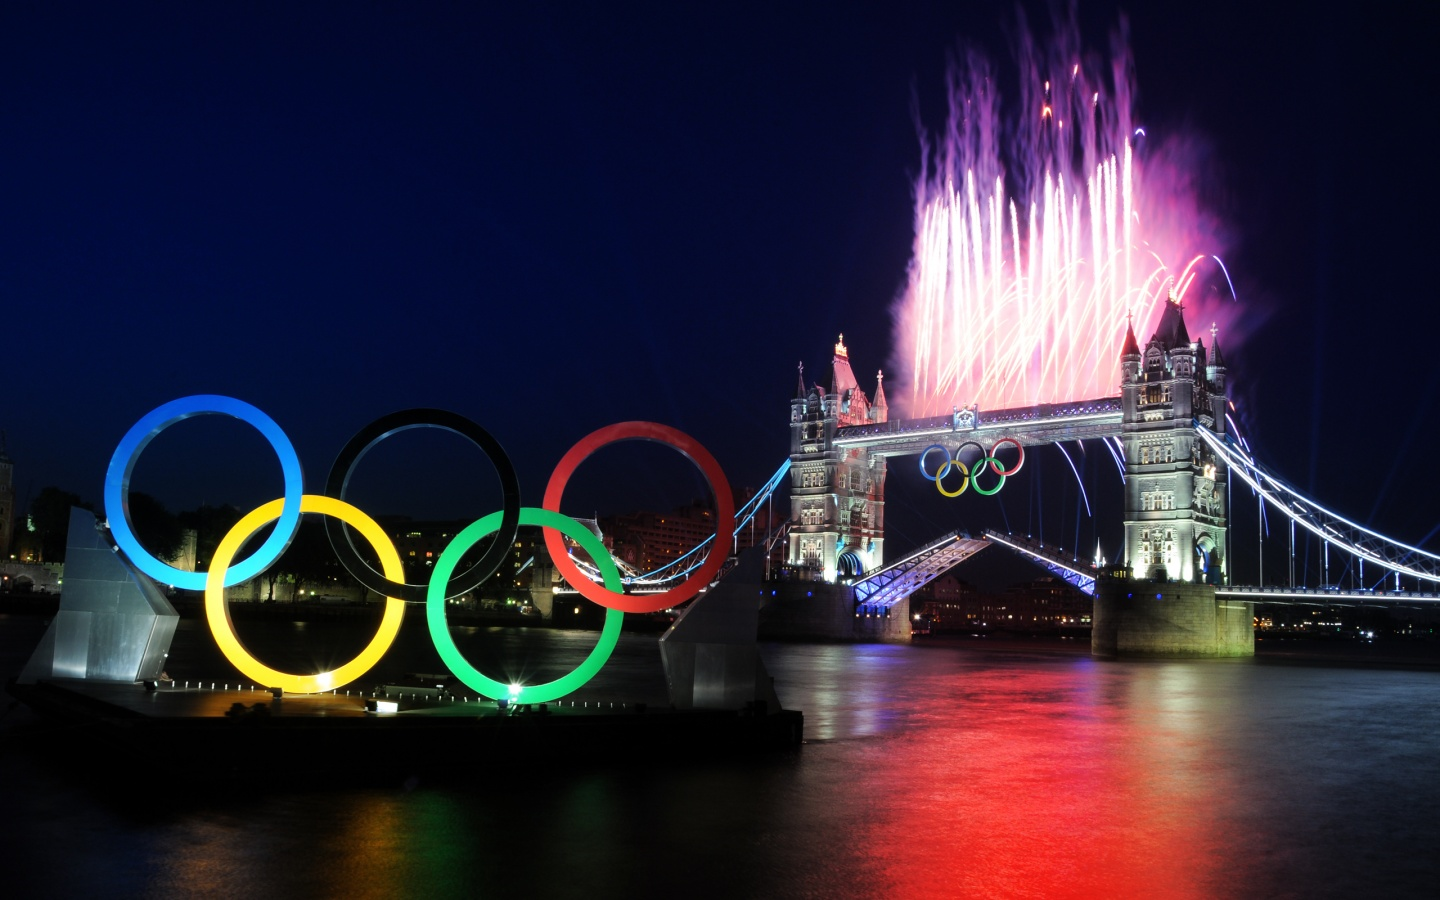 London Olympics Wallpapers and Background Images   stmednet 1440x900